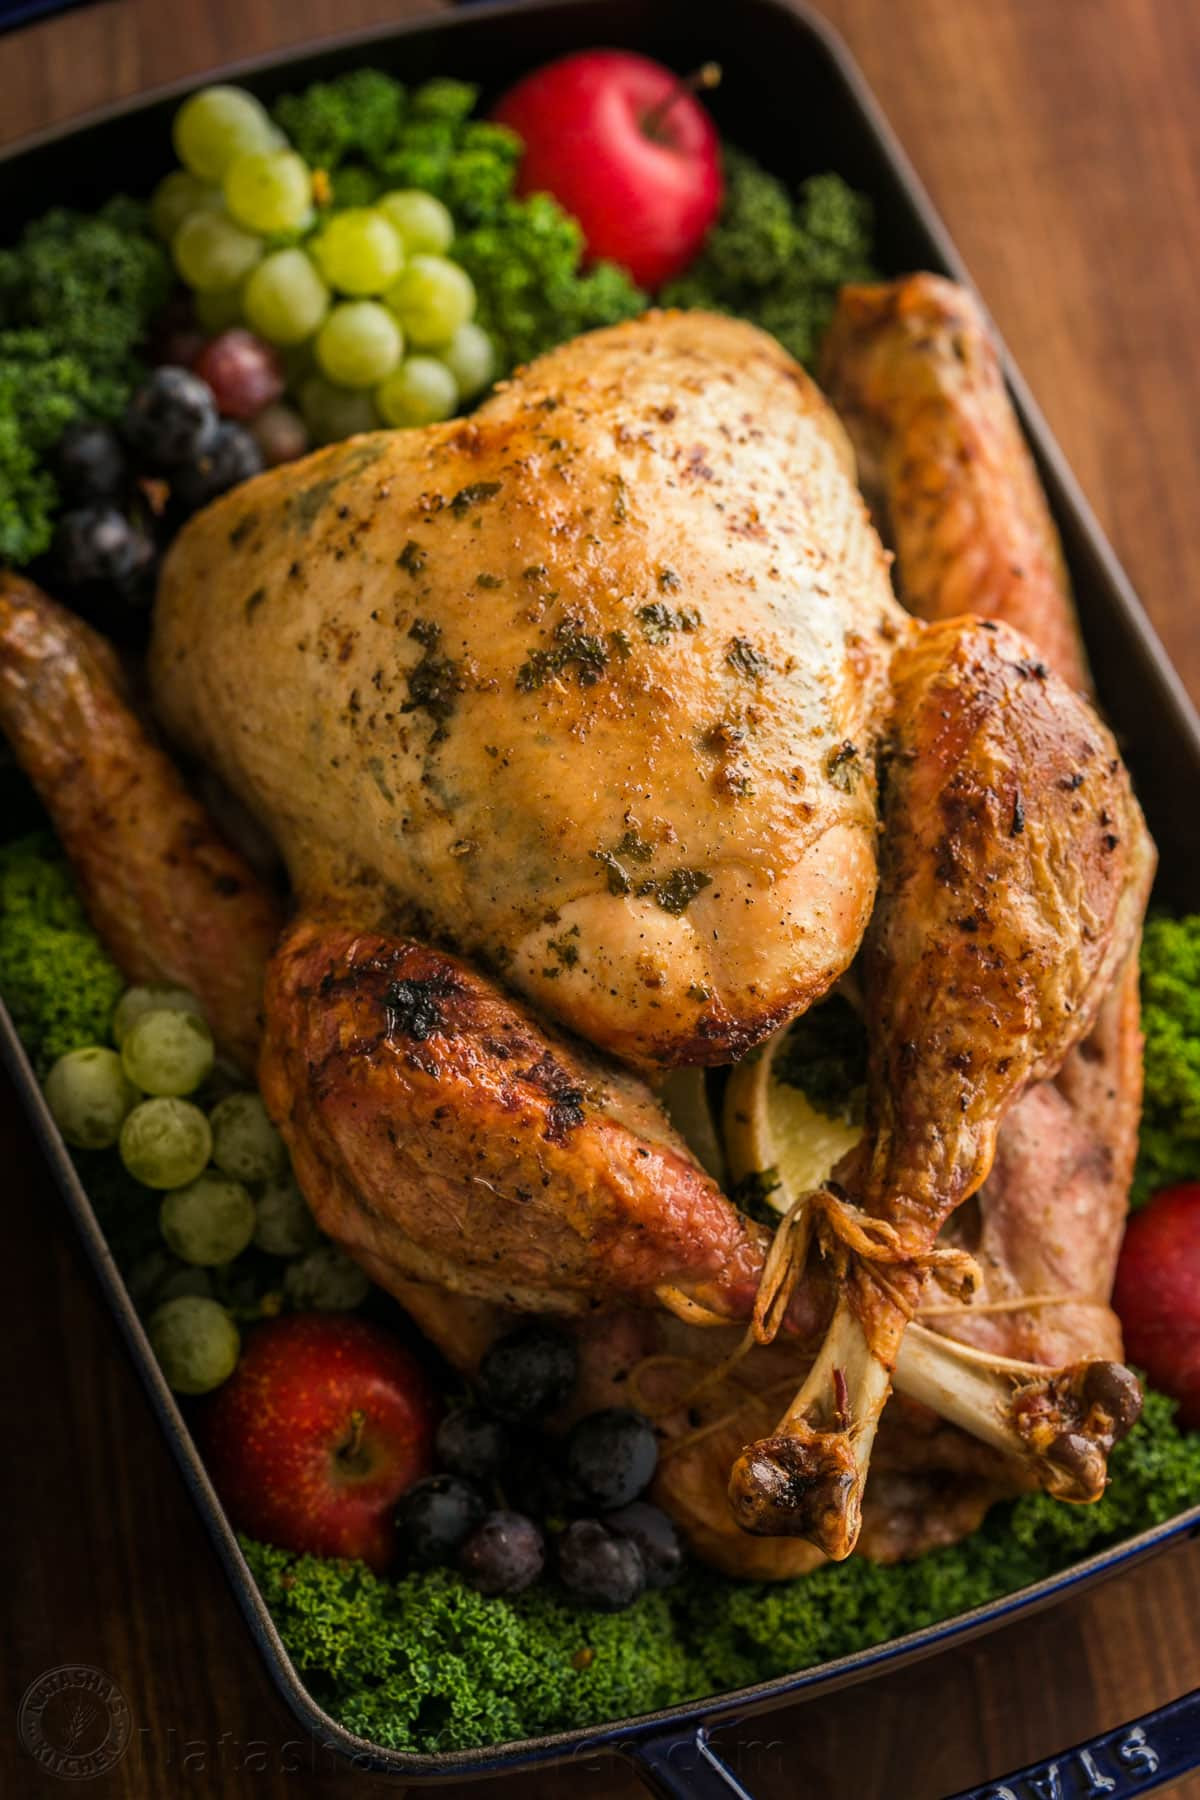 Roast Turkey Recipes Thanksgiving  Thanksgiving Turkey Recipe VIDEO NatashasKitchen